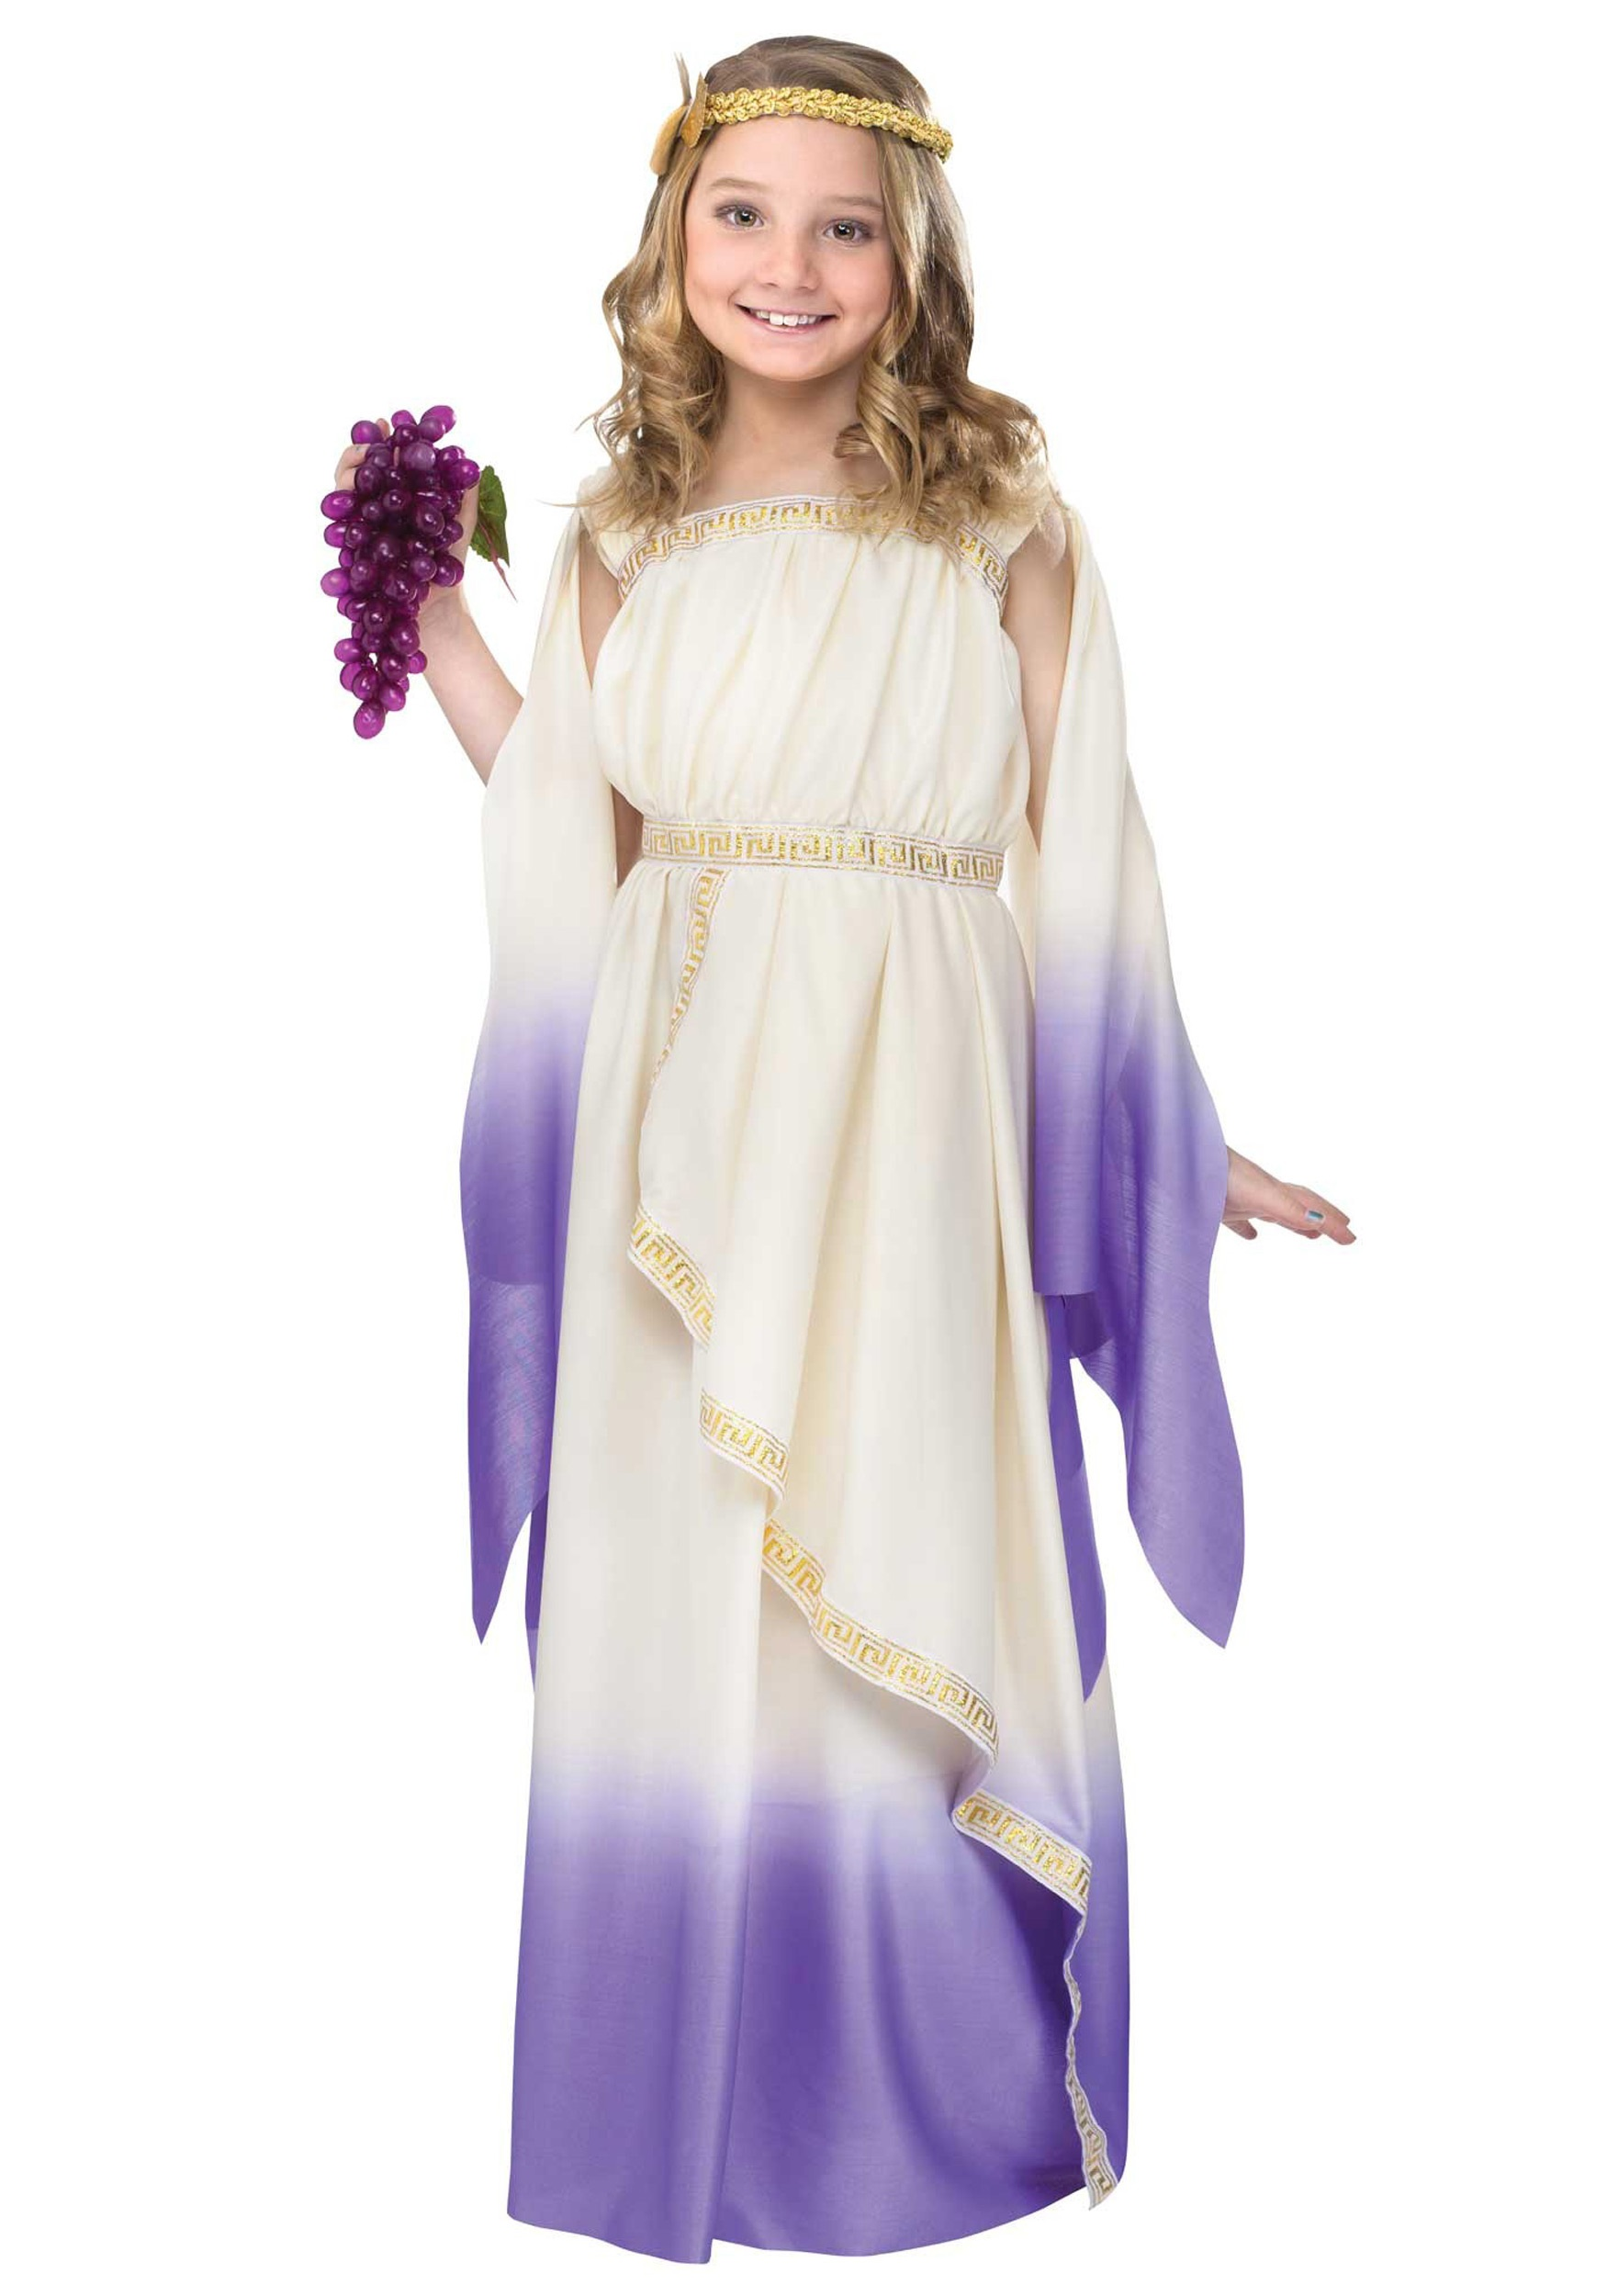 Girls Purple Goddess Costume: http://www.halloweencostumes.com/girls-purple-goddess-costume.html